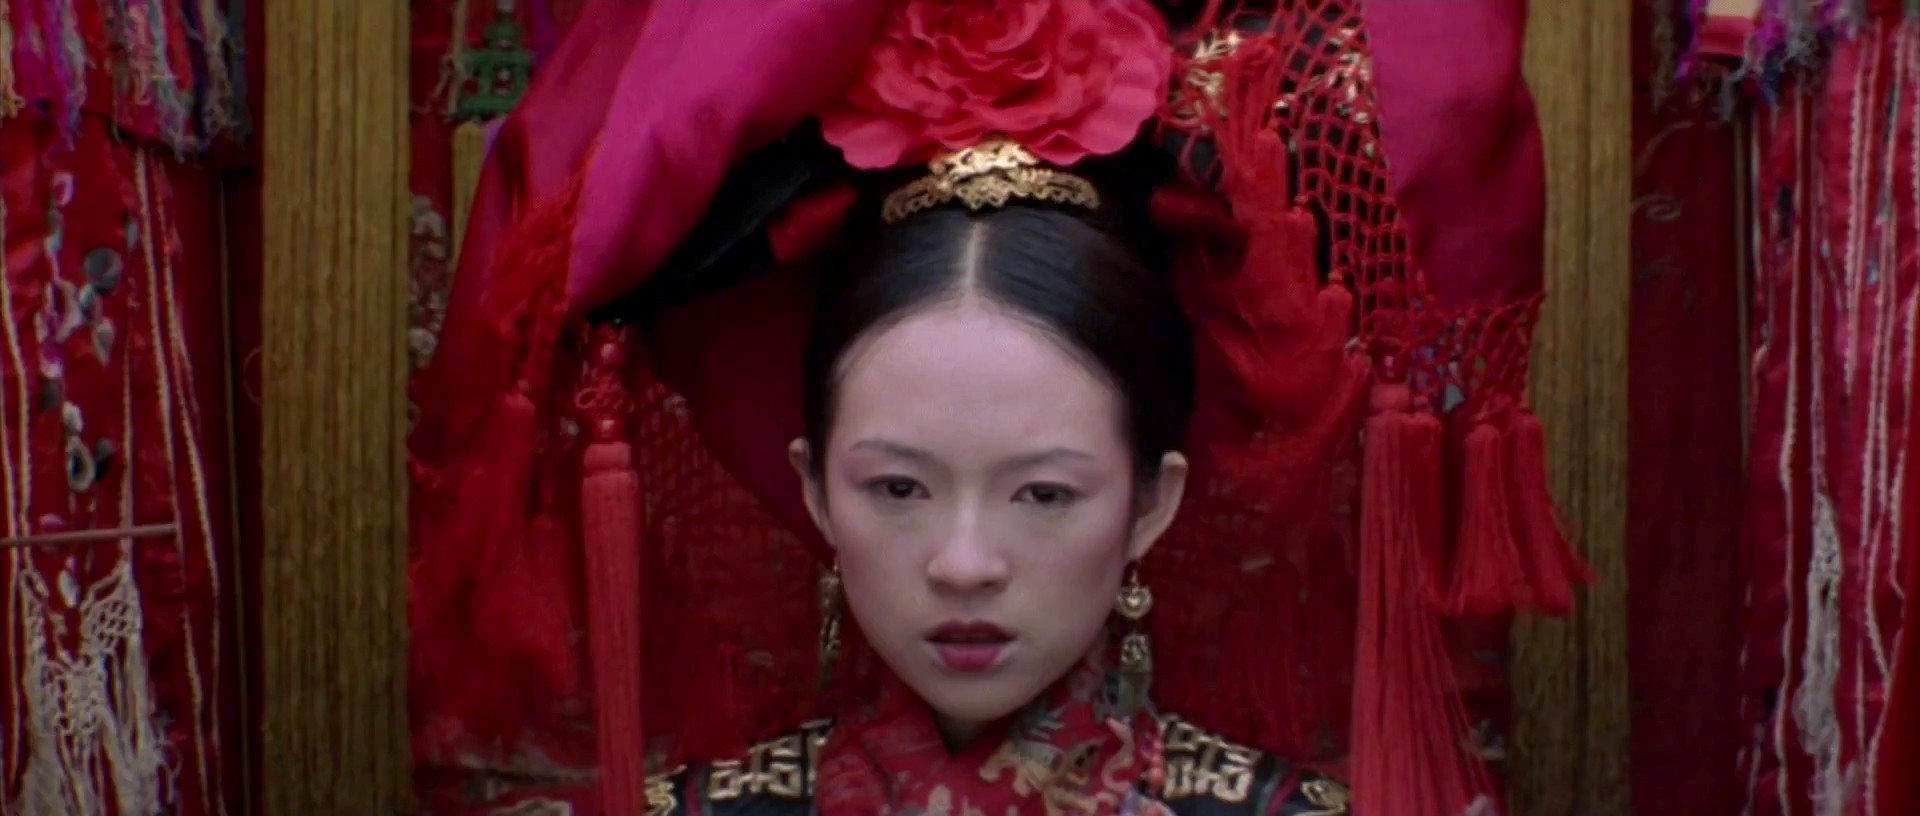 "Zhang Ziyi as Jen Yu in the martial arts classic ""Crouching Tiger Hidden Dragon"" wears the traditional red attire for a Chinese bride. Source"